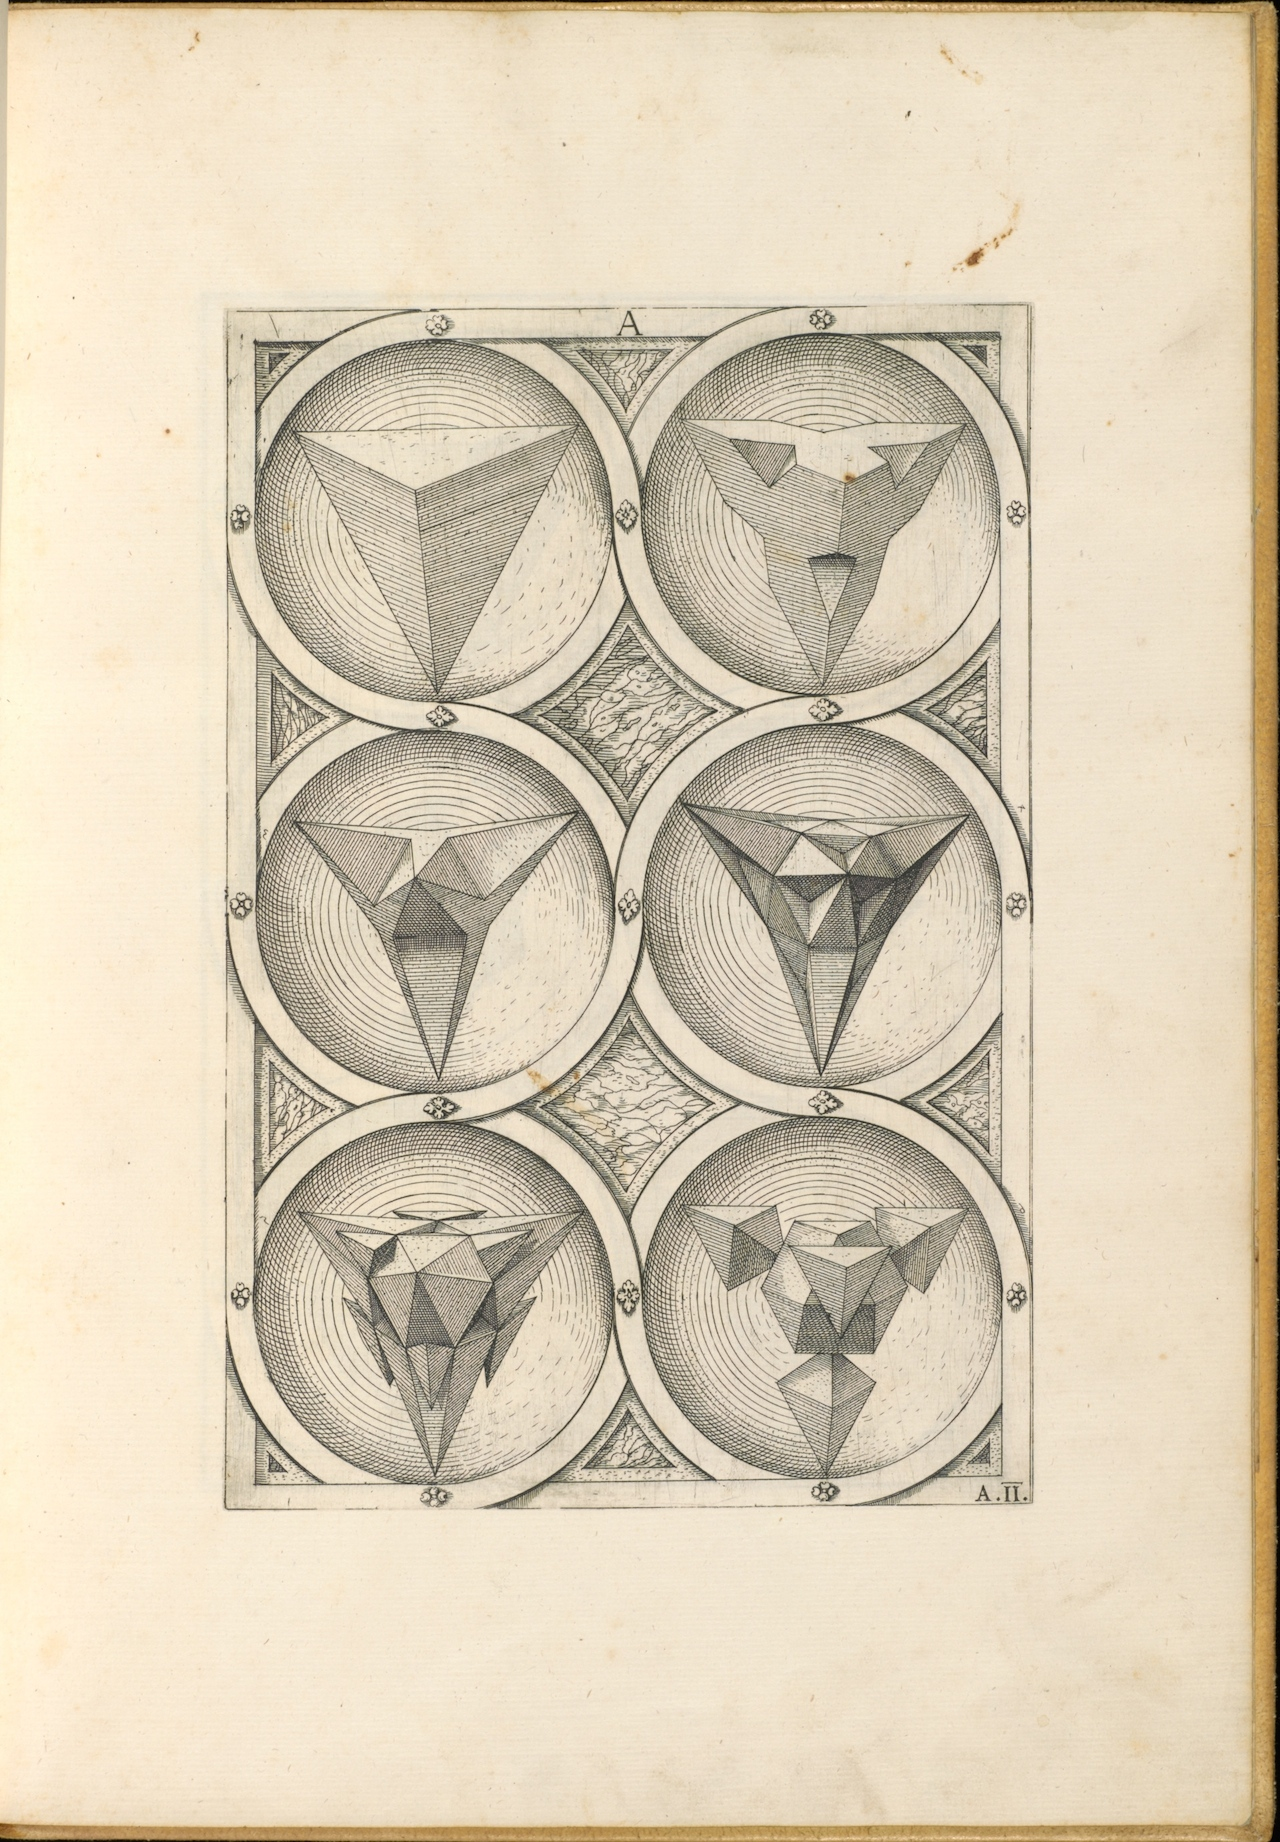 geometry and mathematics in the renaissance De abaco and mathematical education in the renaissance that was pretty subtle geometry in the flagellationcould a renaissance viewer really appreciate all that how much mathematics did.